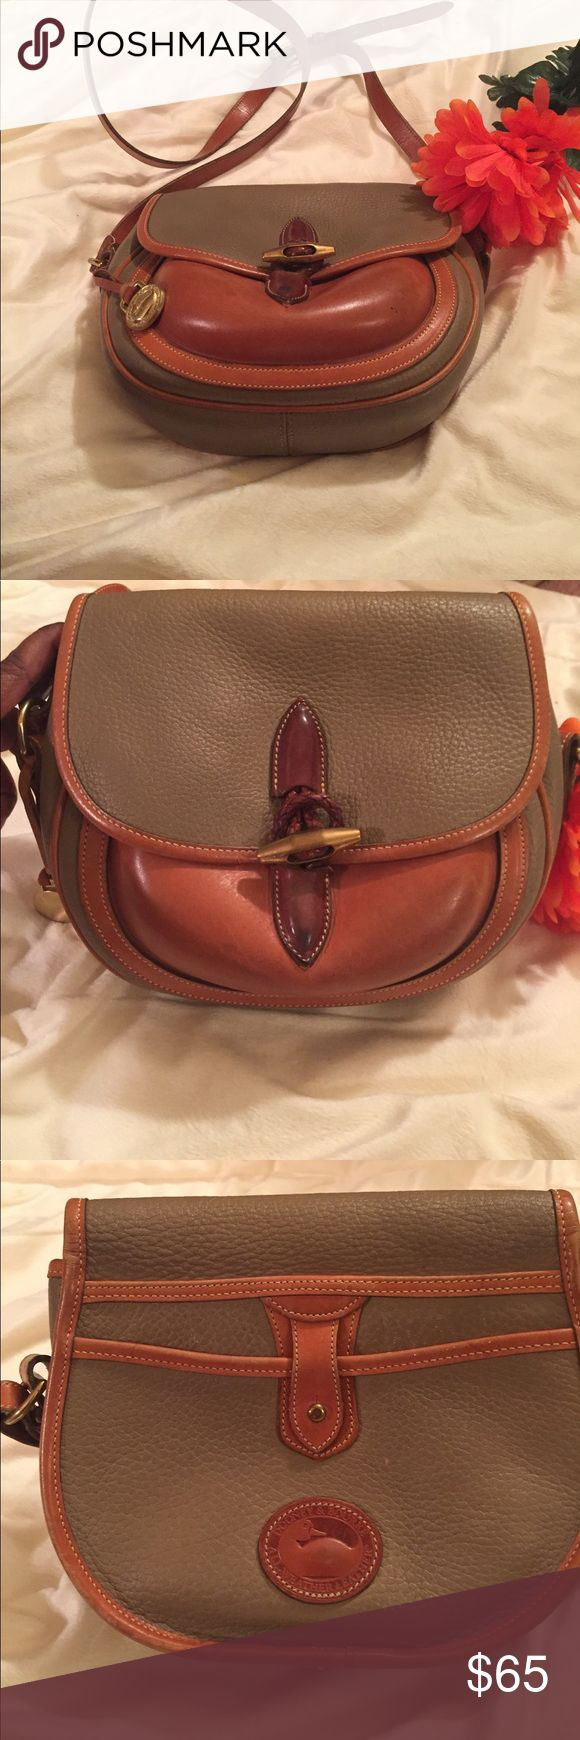 Dooney and Bourke AWL Saddle Vintage Handbag Beautiful handbag from Dooney and Bourke in the color tan. Unique outside pocket on both sides with unique closure. Inside has traditional pockets with little wear inside and outside. In excellent condition. Leather conditioning care. Handle size is 20 inches with room for extension. Dooney & Bourke Bags Shoulder Bags